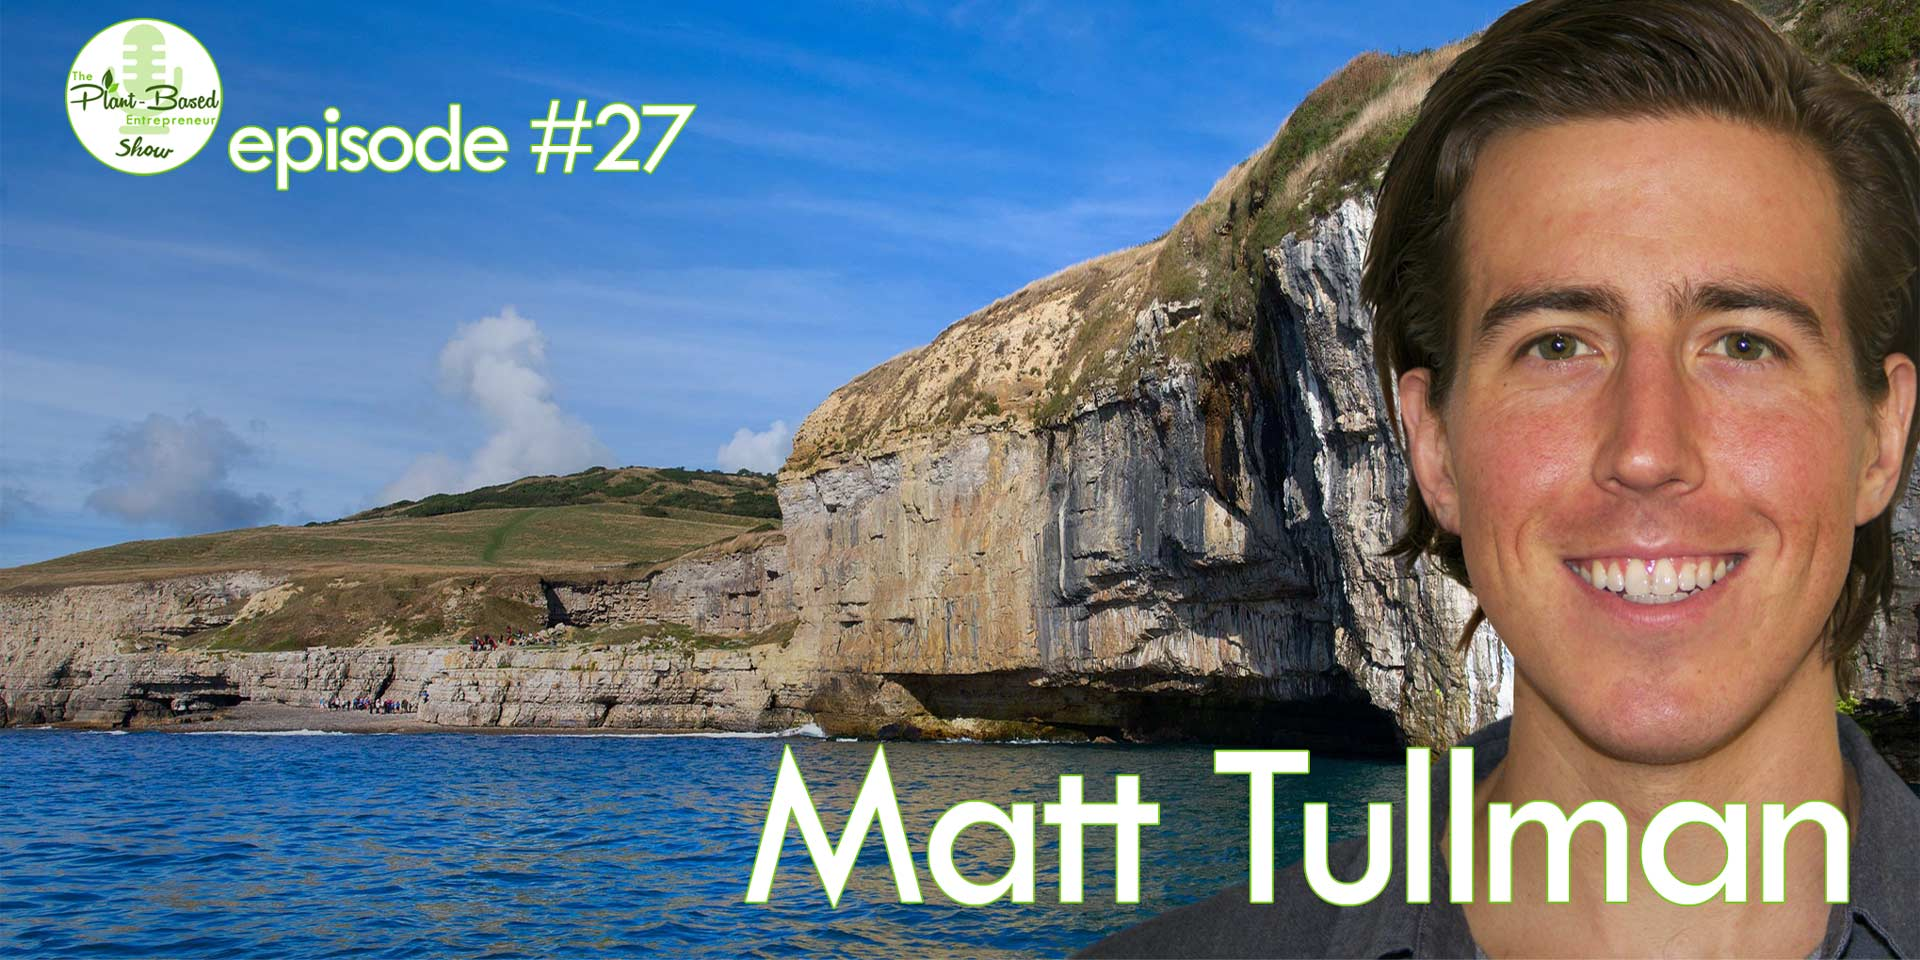 Episode #27 - Matt Tullman